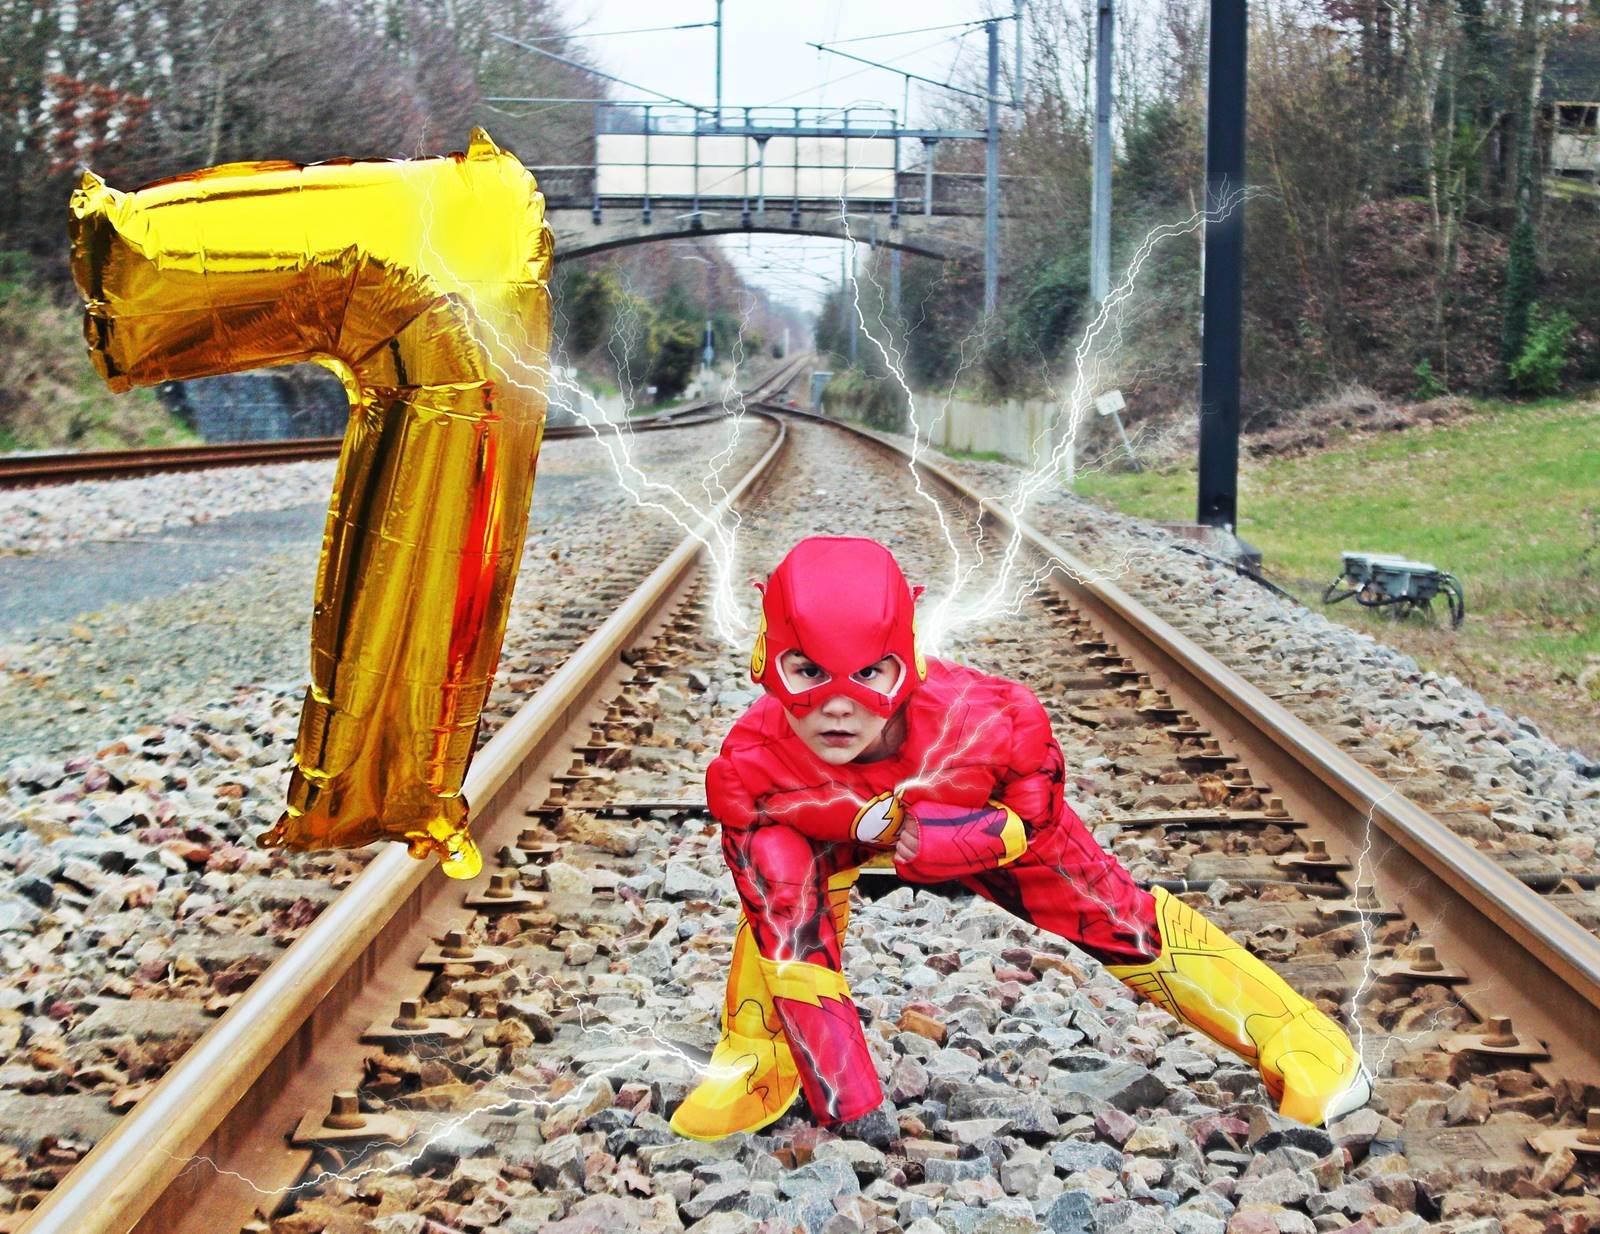 Flash cosplay comics deguisefinal 2